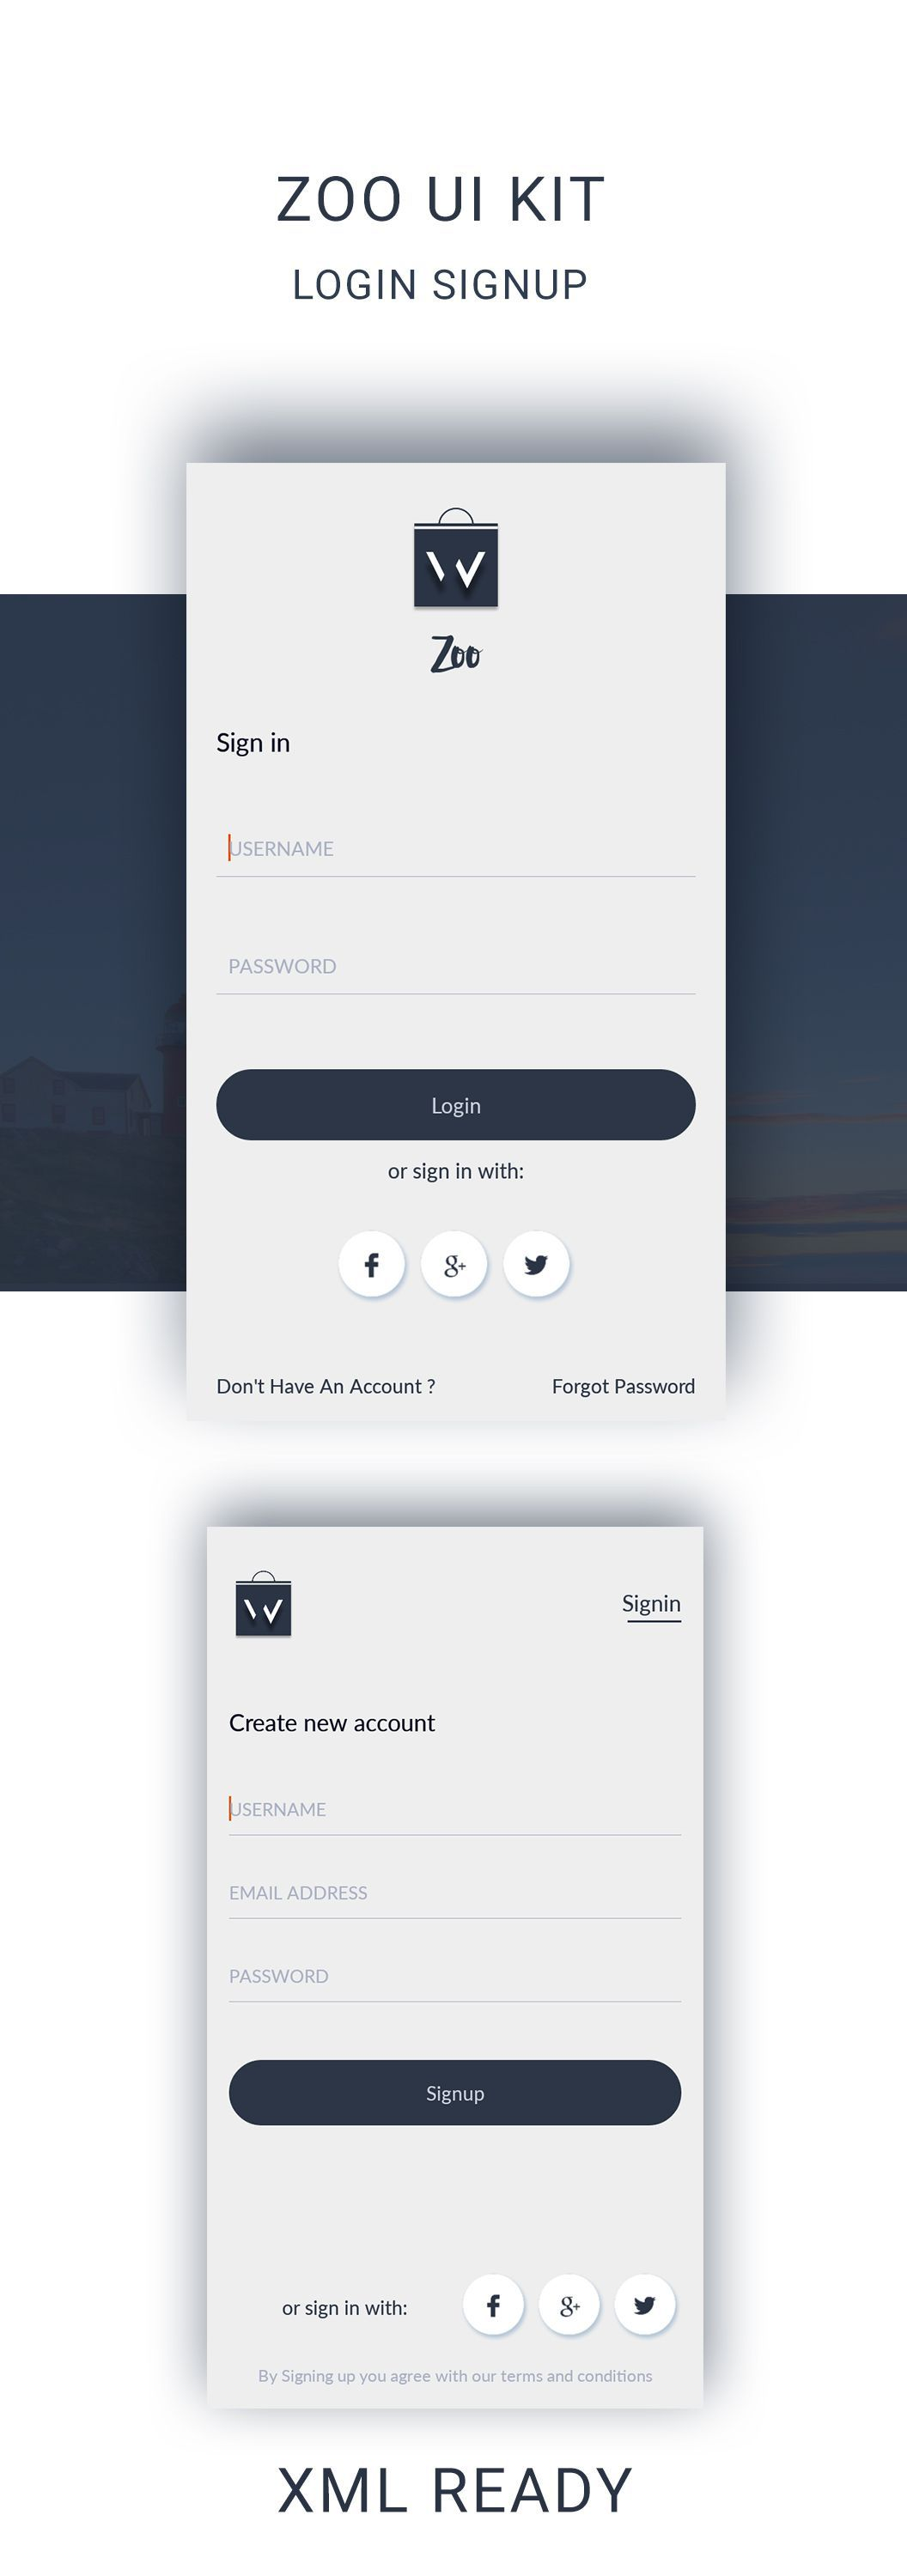 download LOGIN SIGNUP UI KIT, Ready XML files to import in